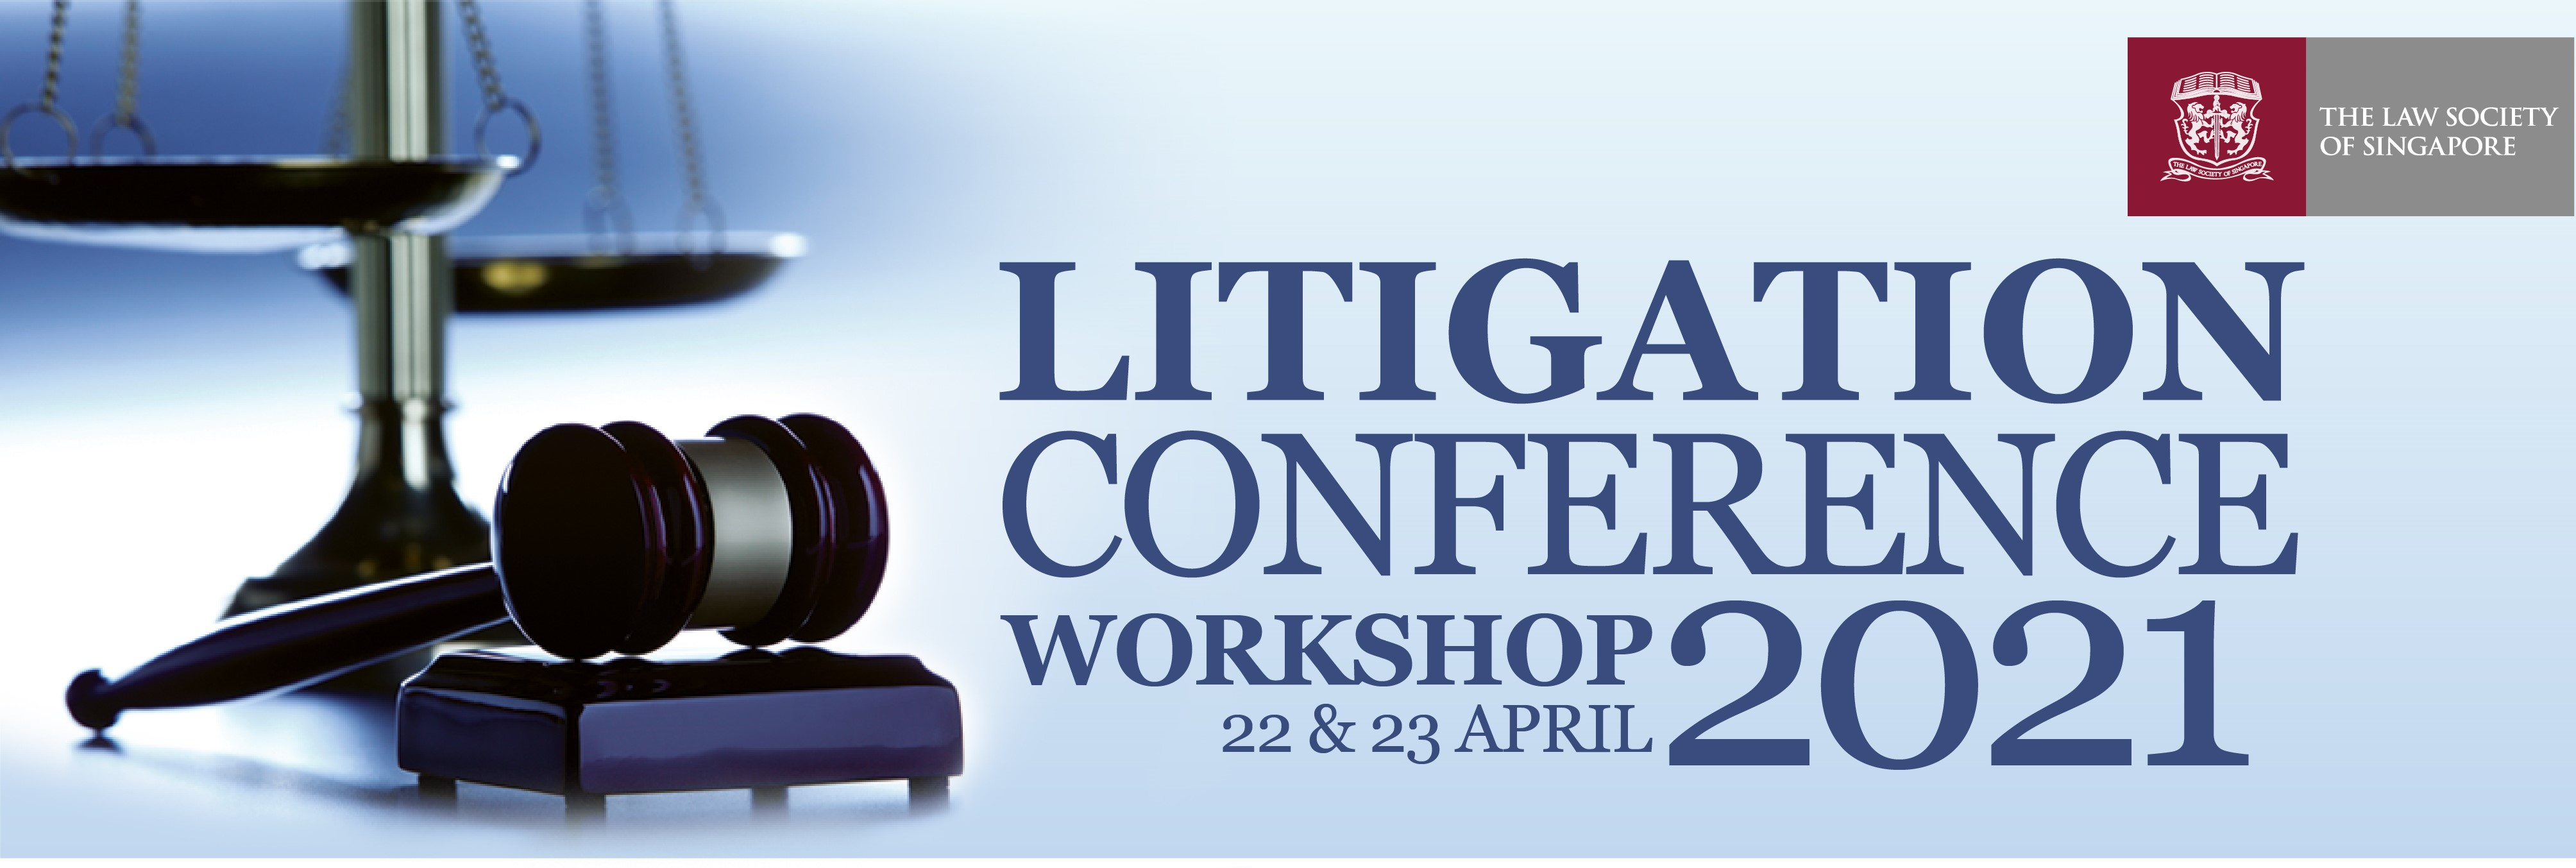 Litigation Conference Workshop 2021 Banner Image